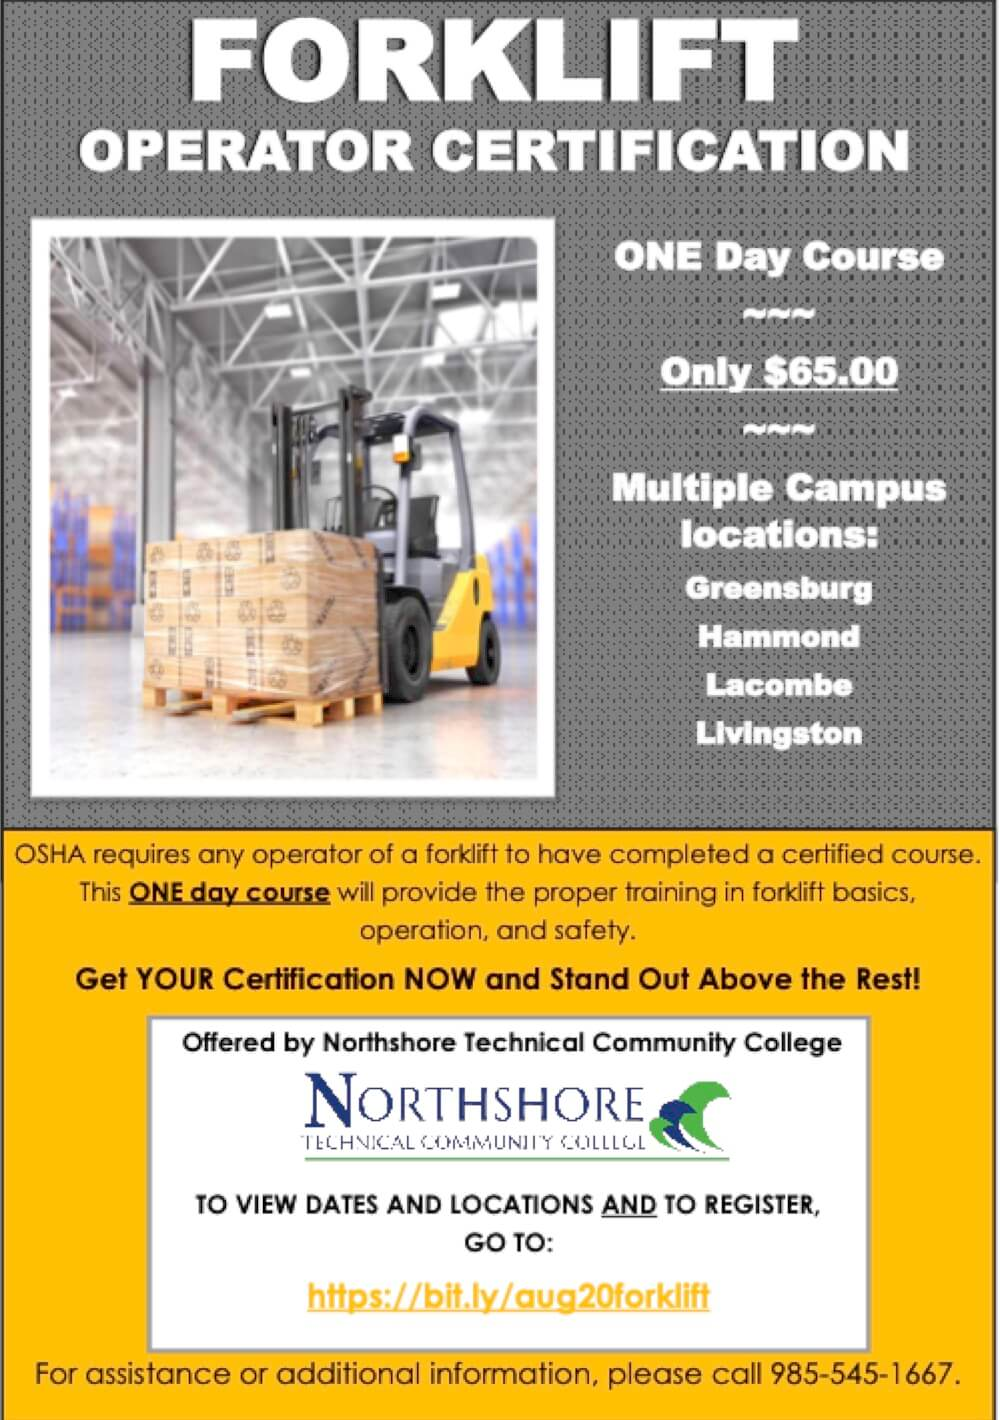 Northshore Technical Community College offers one day course for forklift operator certification at multiple locations